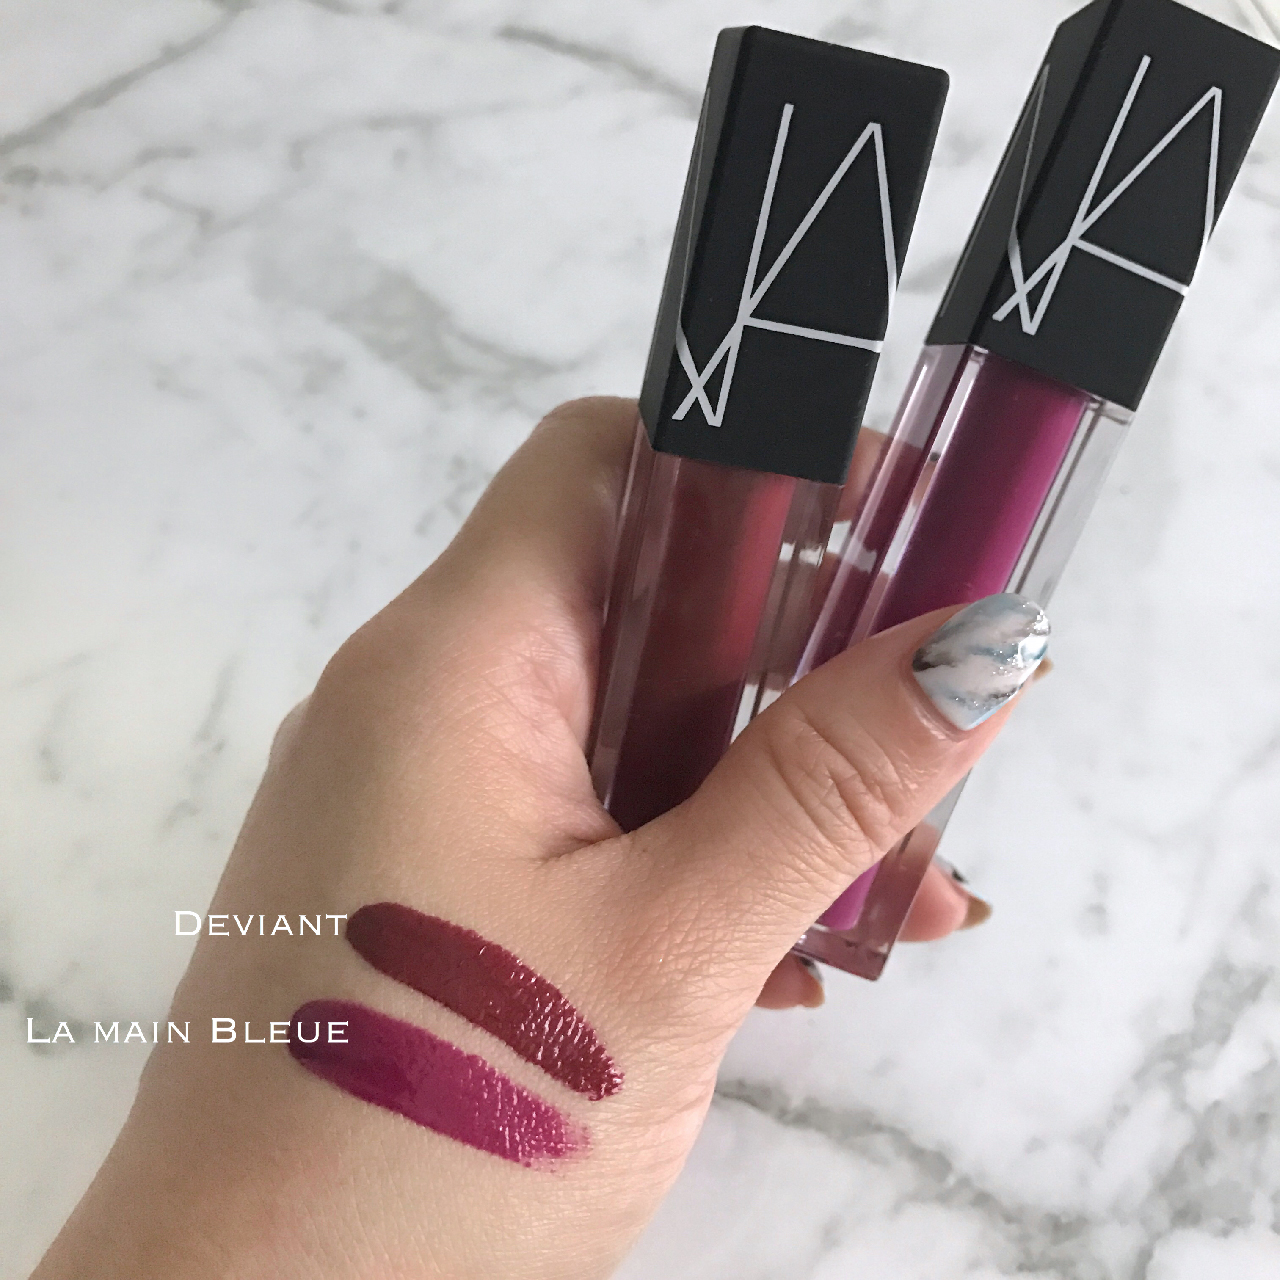 NARS Velvet Lip Glide Deviant & La Main Bleue swatches